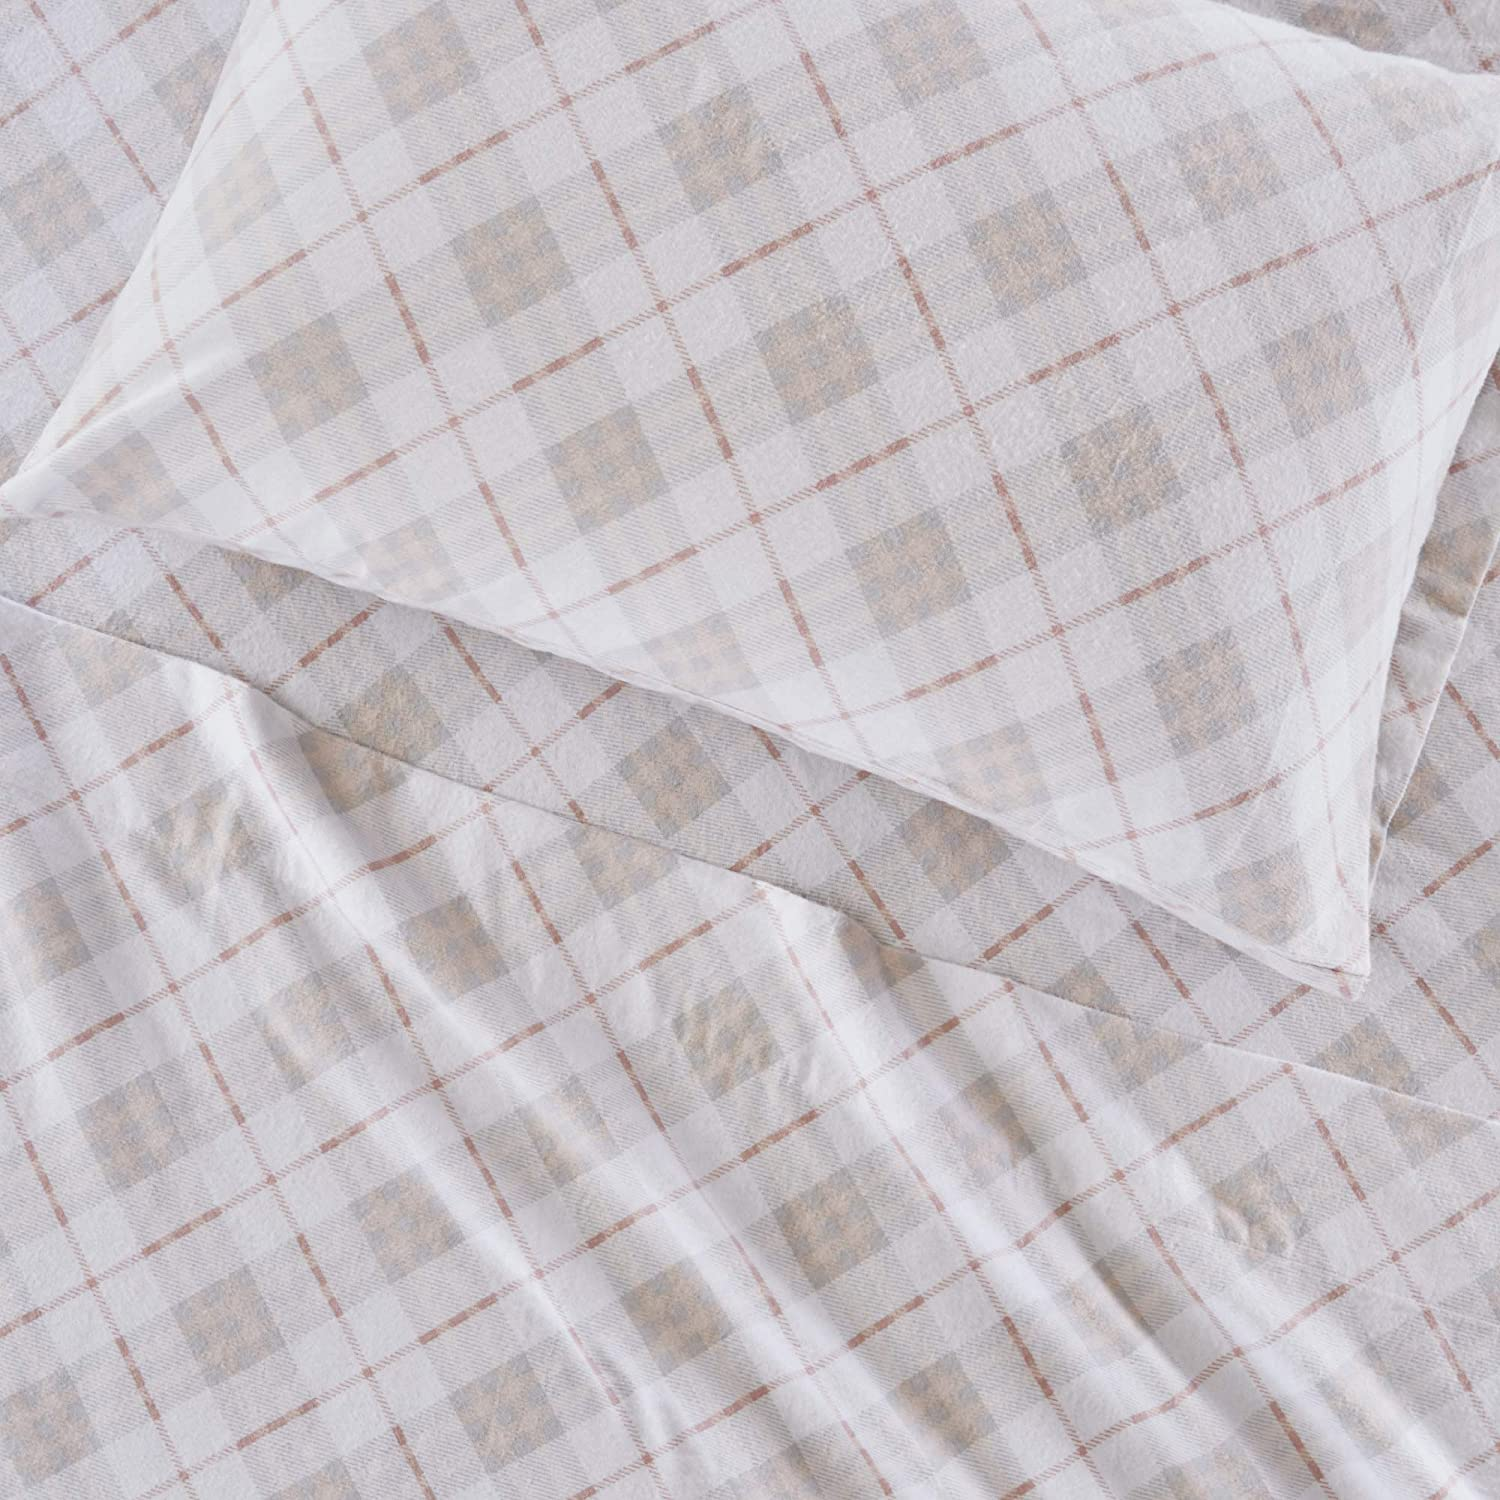 True North by Sleep Philosophy Cozy Flannel 100% Cotton Ultra Soft Cold Weather Sheet Set Bedding, Queen, Pink Plaid 4 Piece: Home & Kitchen